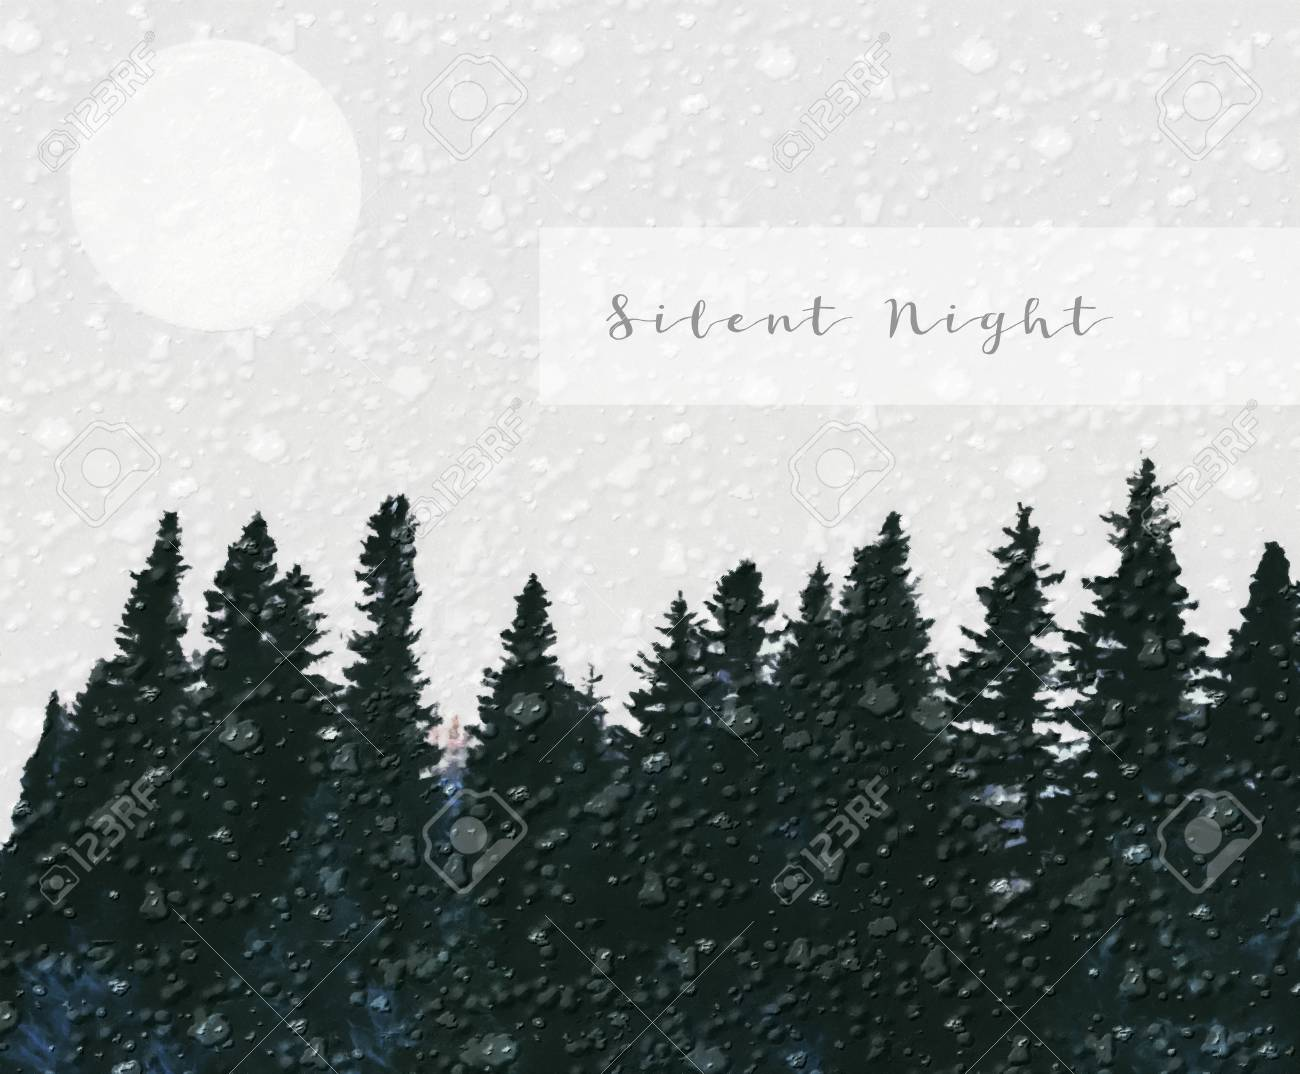 Simple Christmas design with a conifer forest, snow, moon and